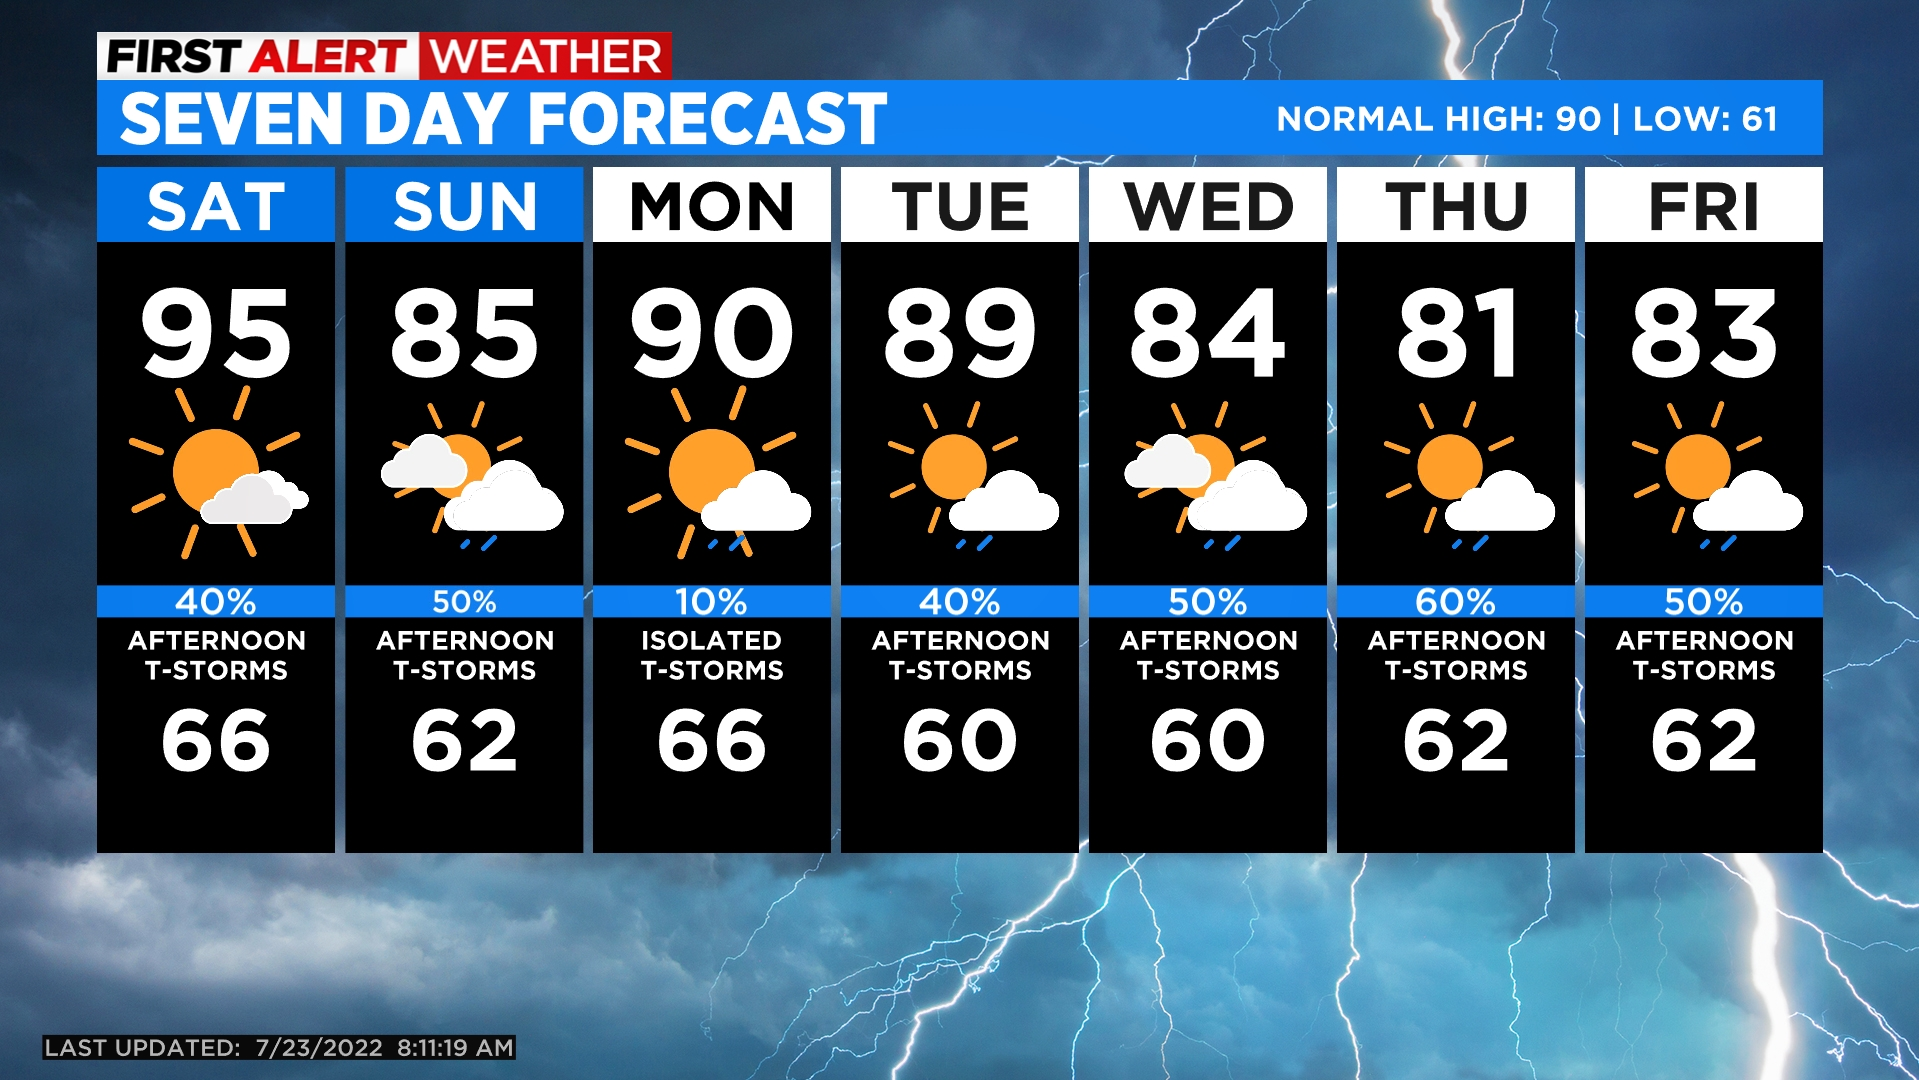 5day Fair, Warmer and Dry Into the Beginning of the Weekend